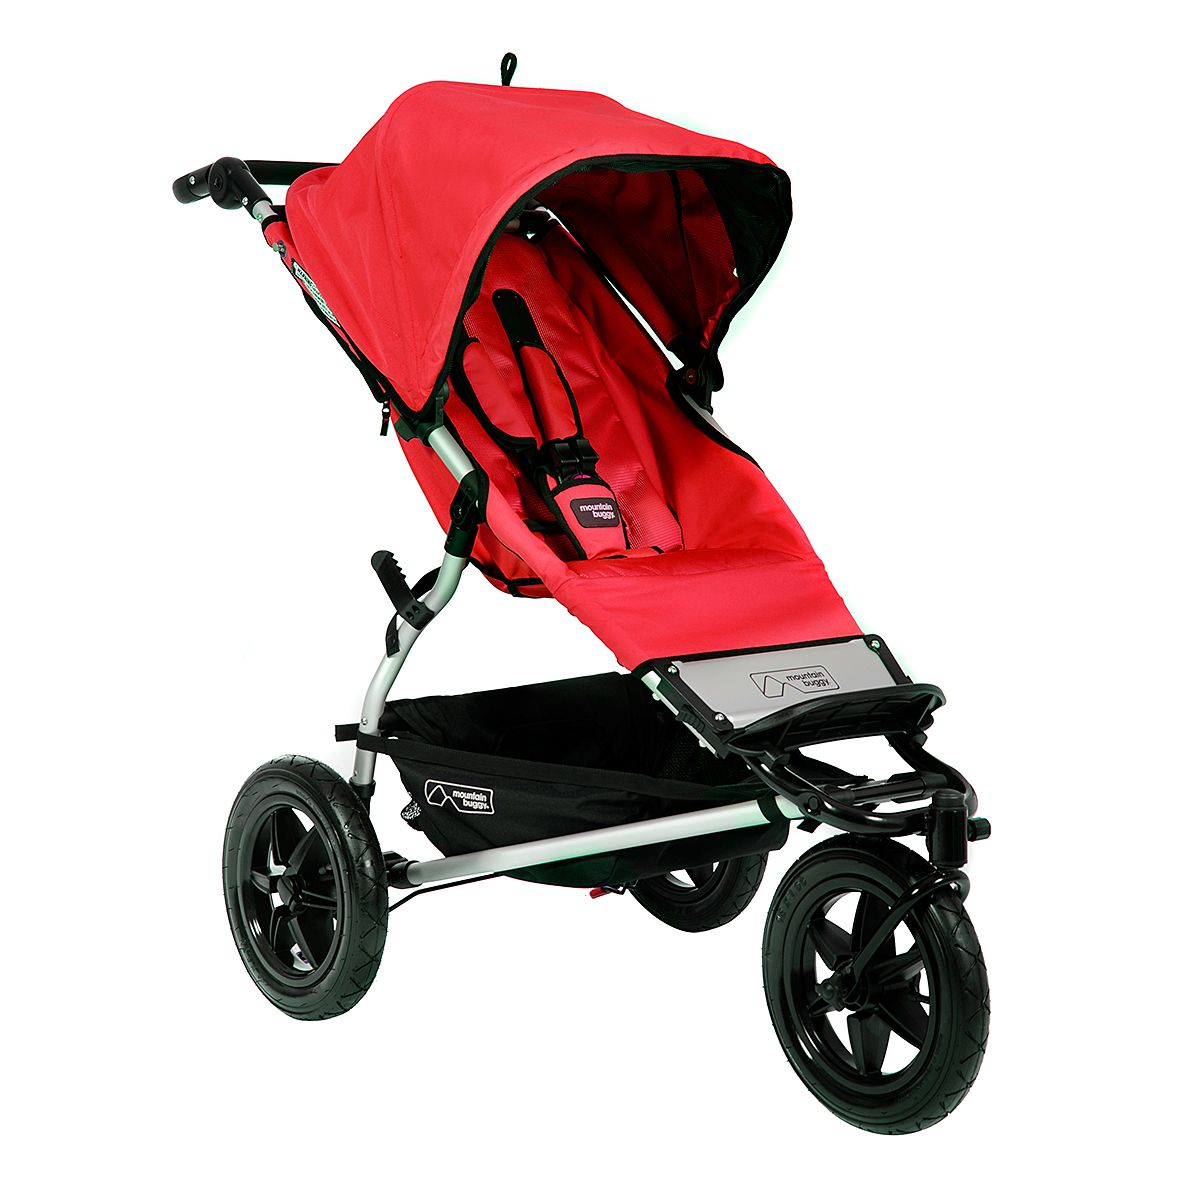 The urban jungle 3 wheel all terrain buggy is great for